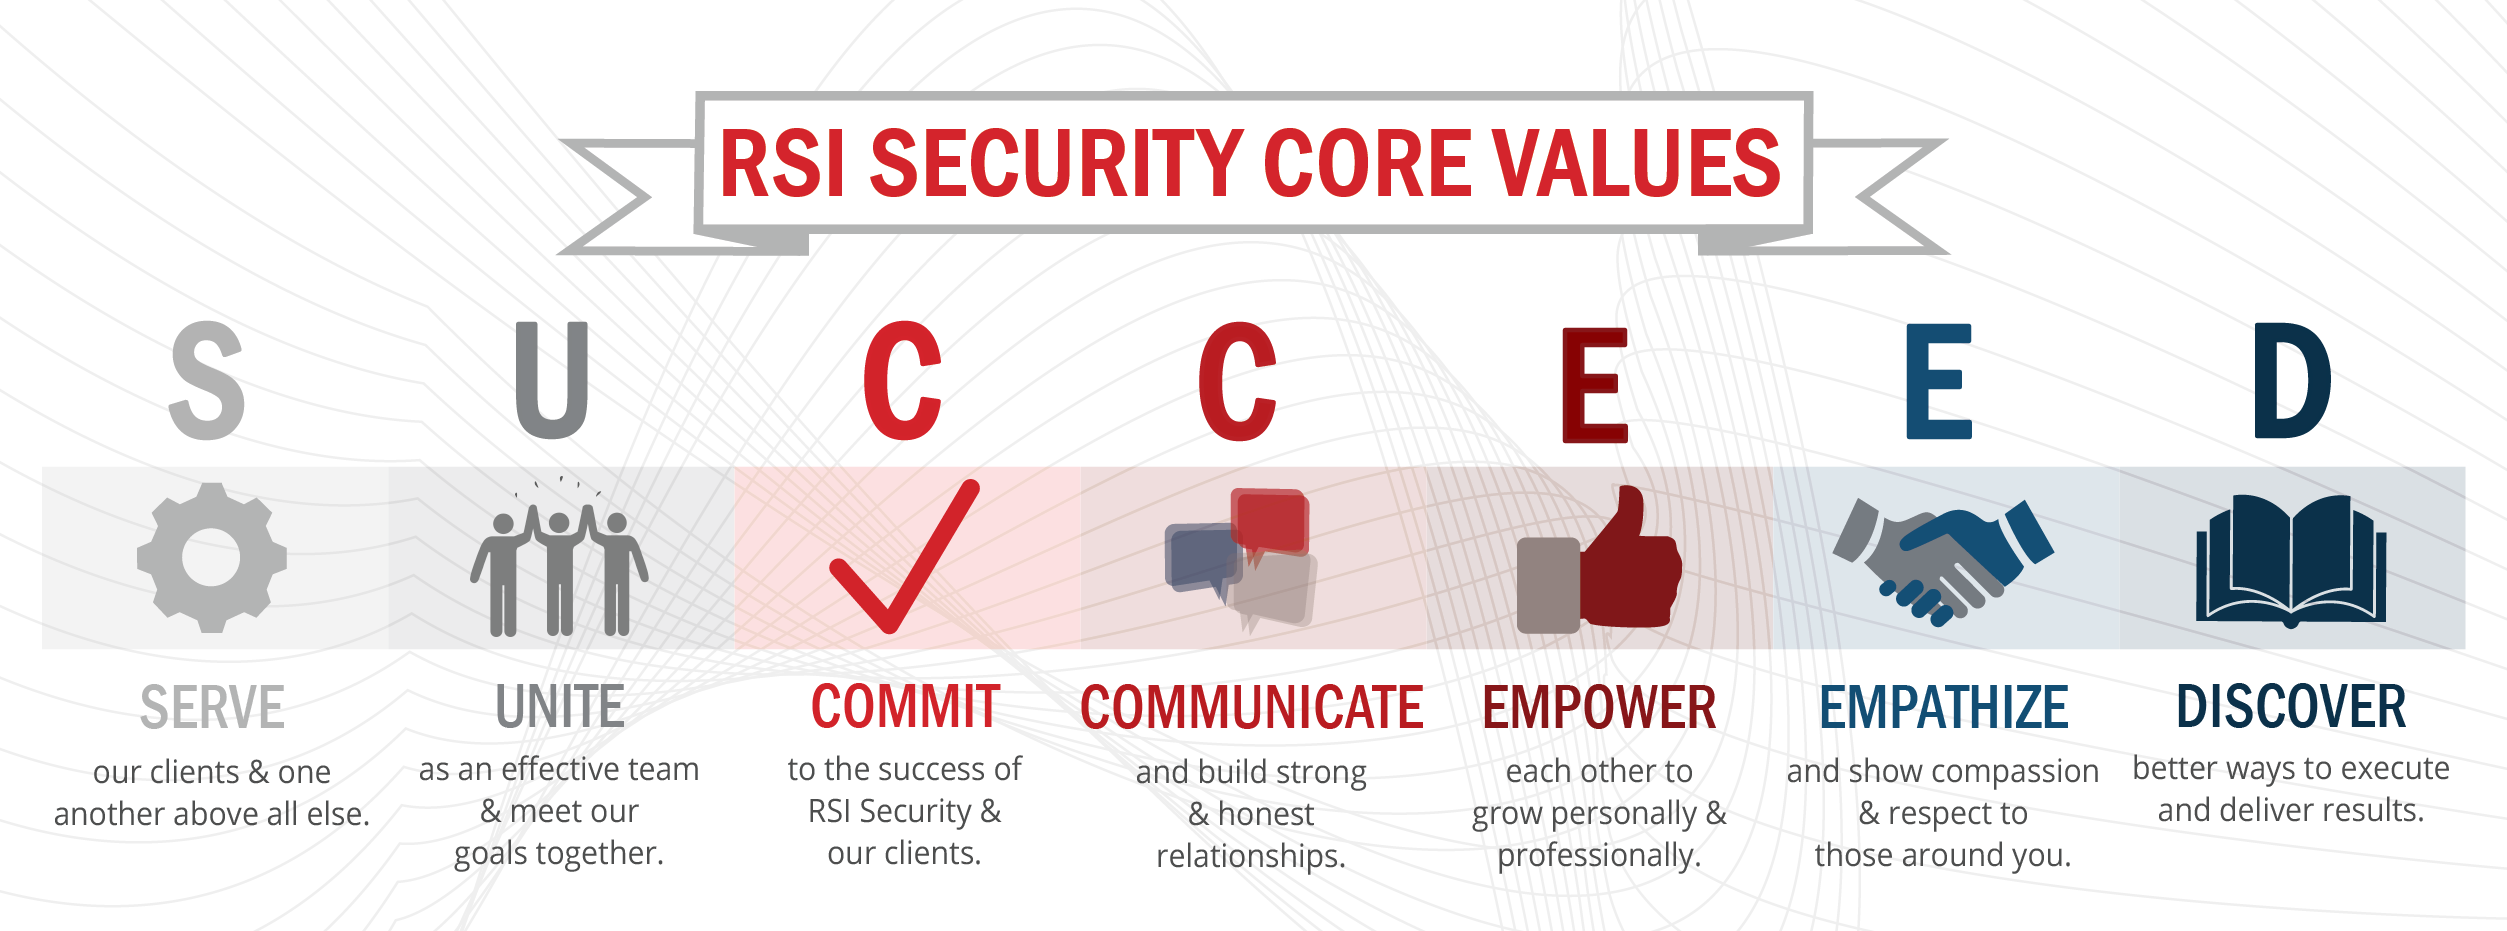 RSI Security Core Values - Serve, Unite, Commit, Communicate, Empower, Empathize, Discover